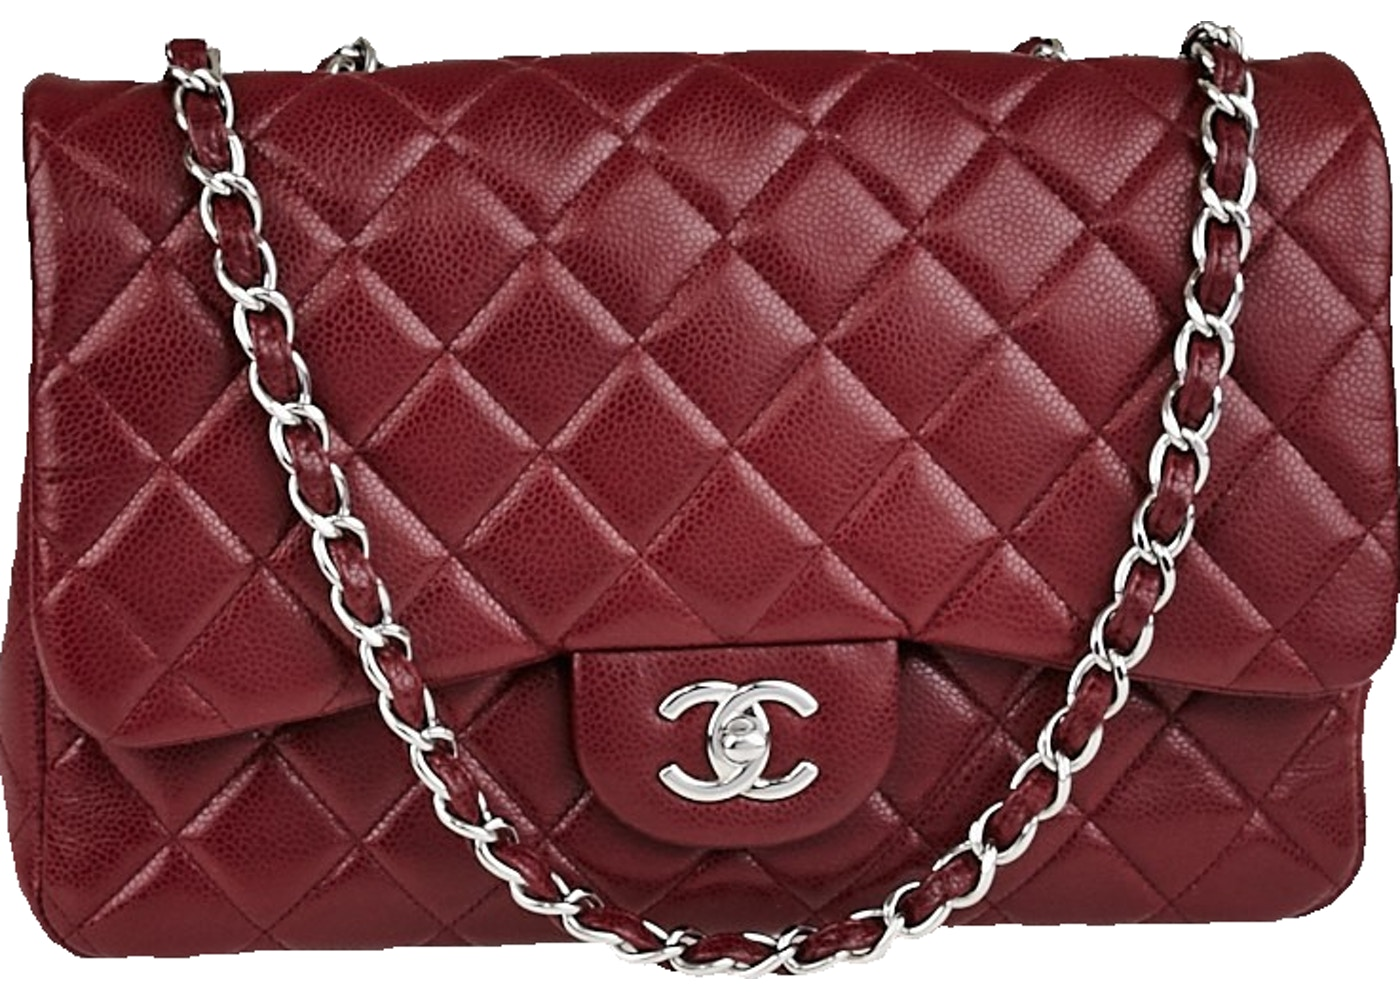 cb37b387186e Sell. or Ask. View All Bids. Chanel Classic Single Flap Quilted Jumbo  Bordeaux